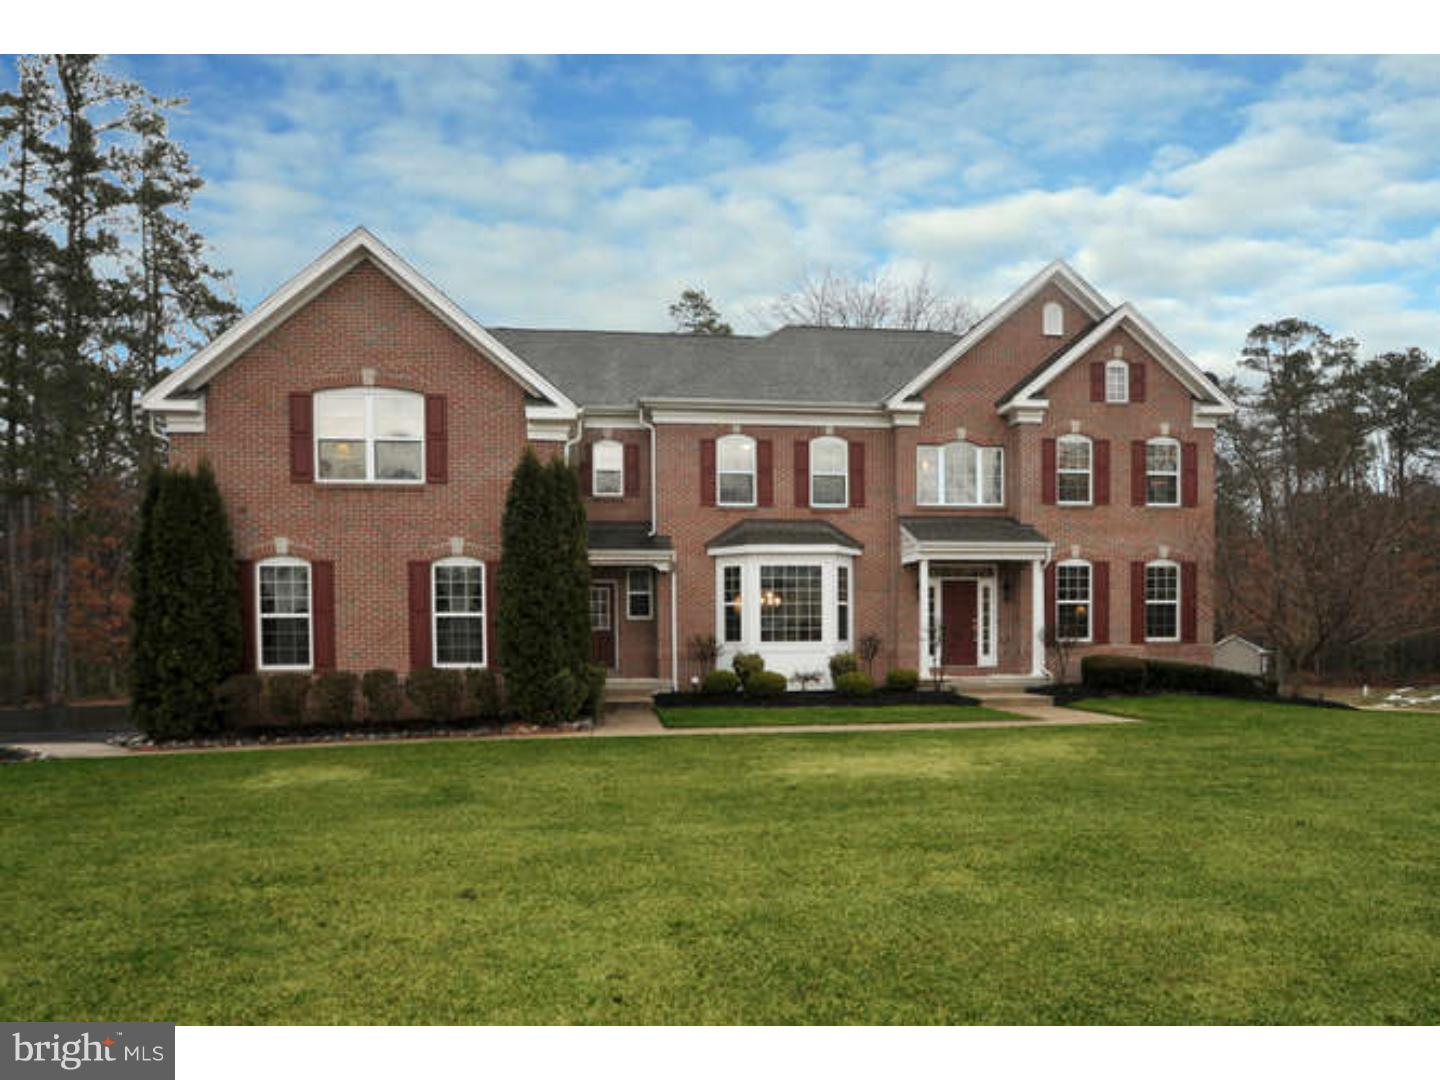 Single Family Home for Sale at 55 SLEEPY HOLLOW Drive Tabernacle, New Jersey 08088 United States